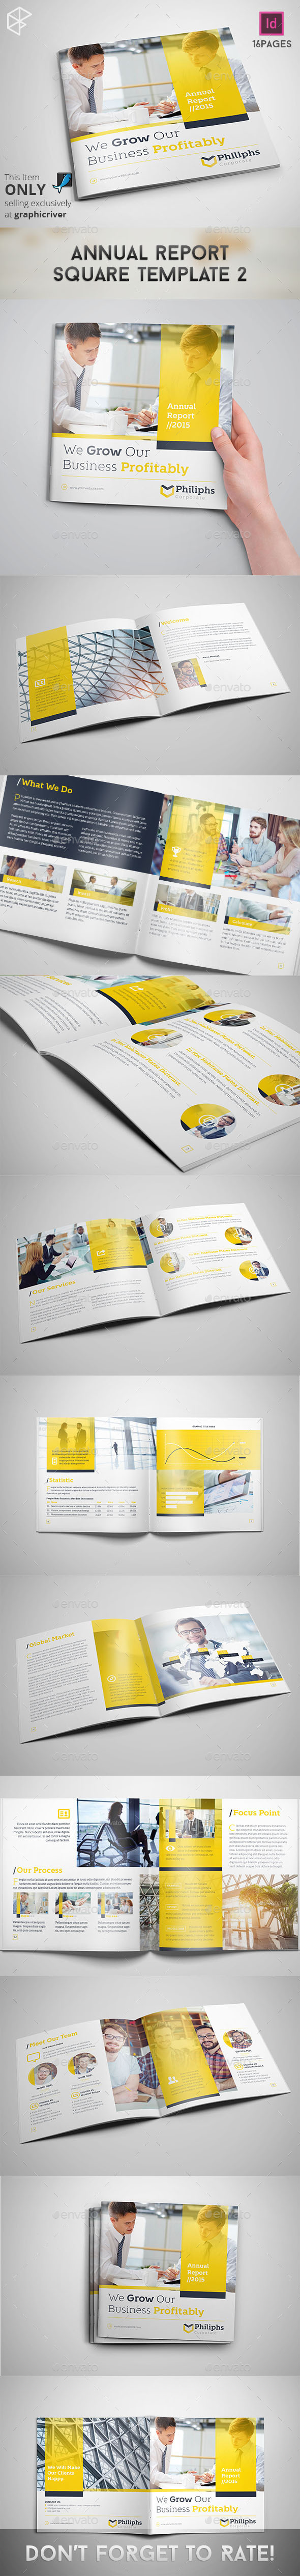 Annual Report Square Template 2 - Corporate Brochures